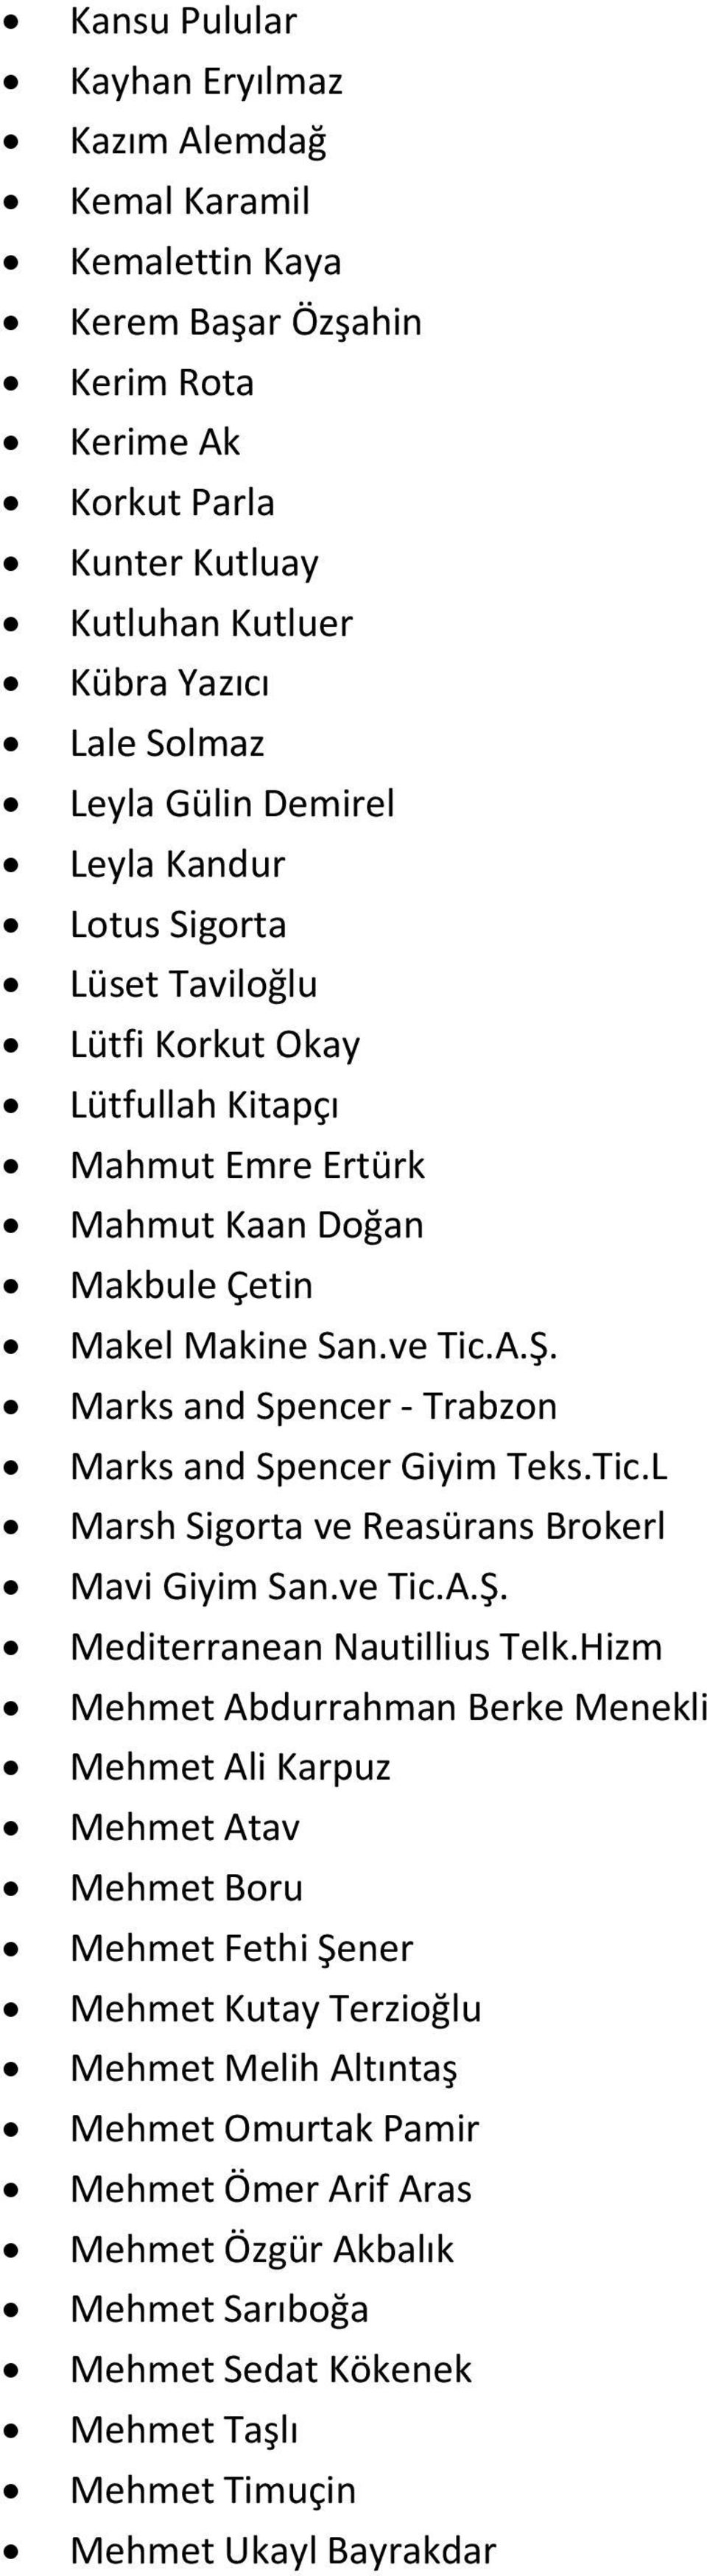 Marks and Spencer Trabzon Marks and Spencer Giyim Teks.Tic.L Marsh Sigorta ve Reasürans Brokerl Mavi Giyim San.ve Tic.A.Ş. Mediterranean Nautillius Telk.